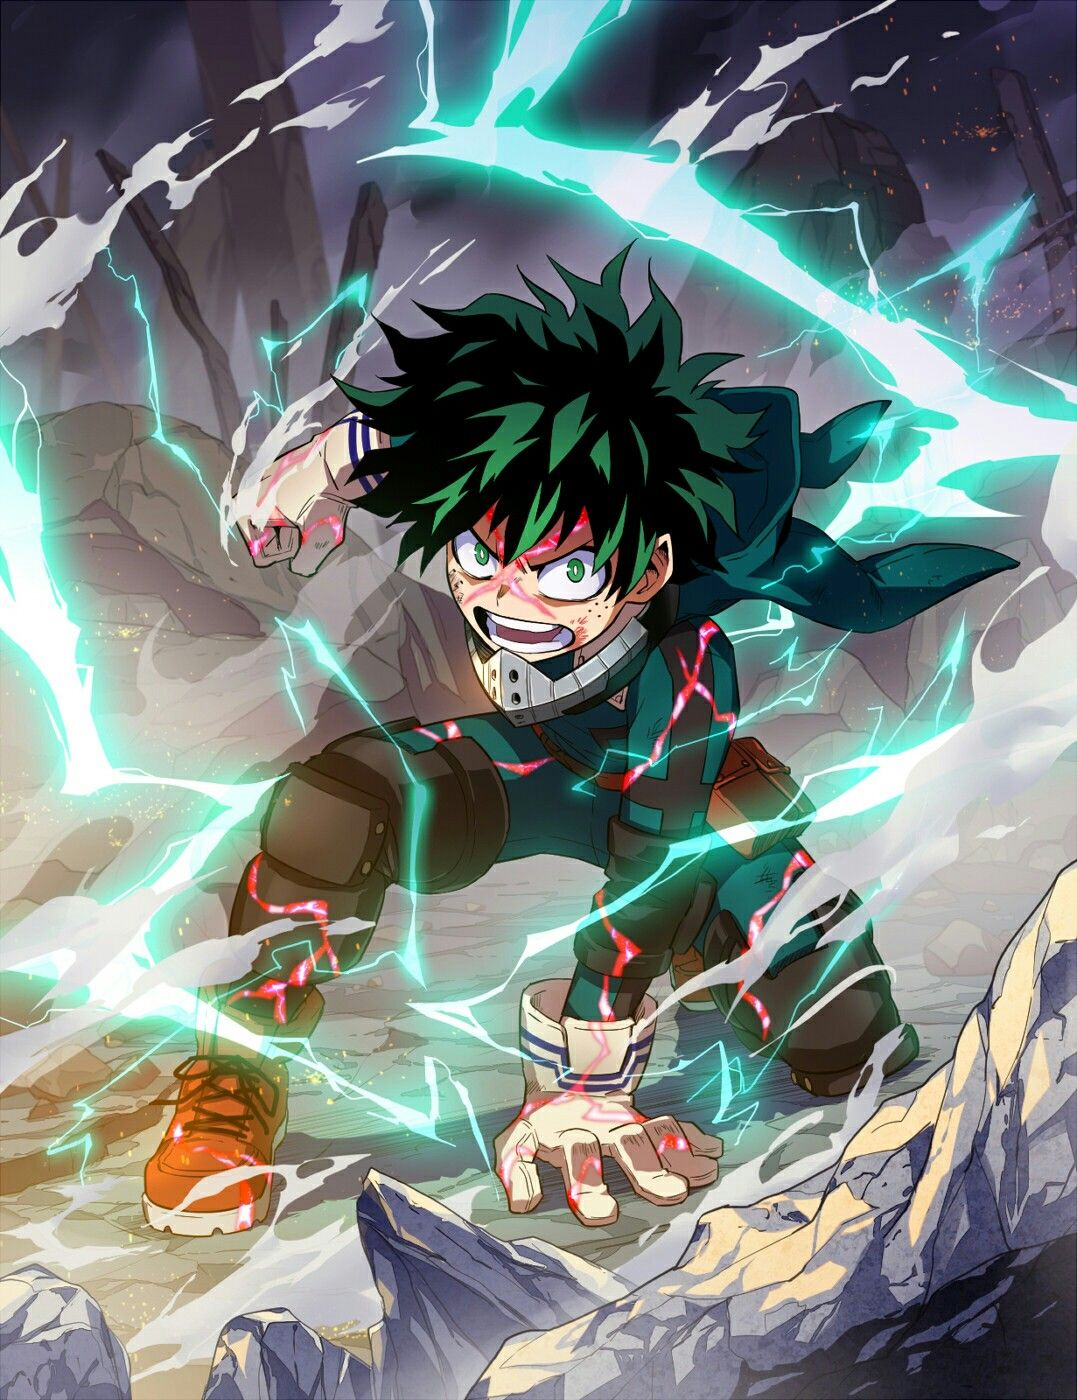 Midoriya | Anime, Anime guys, Hero wallpaper